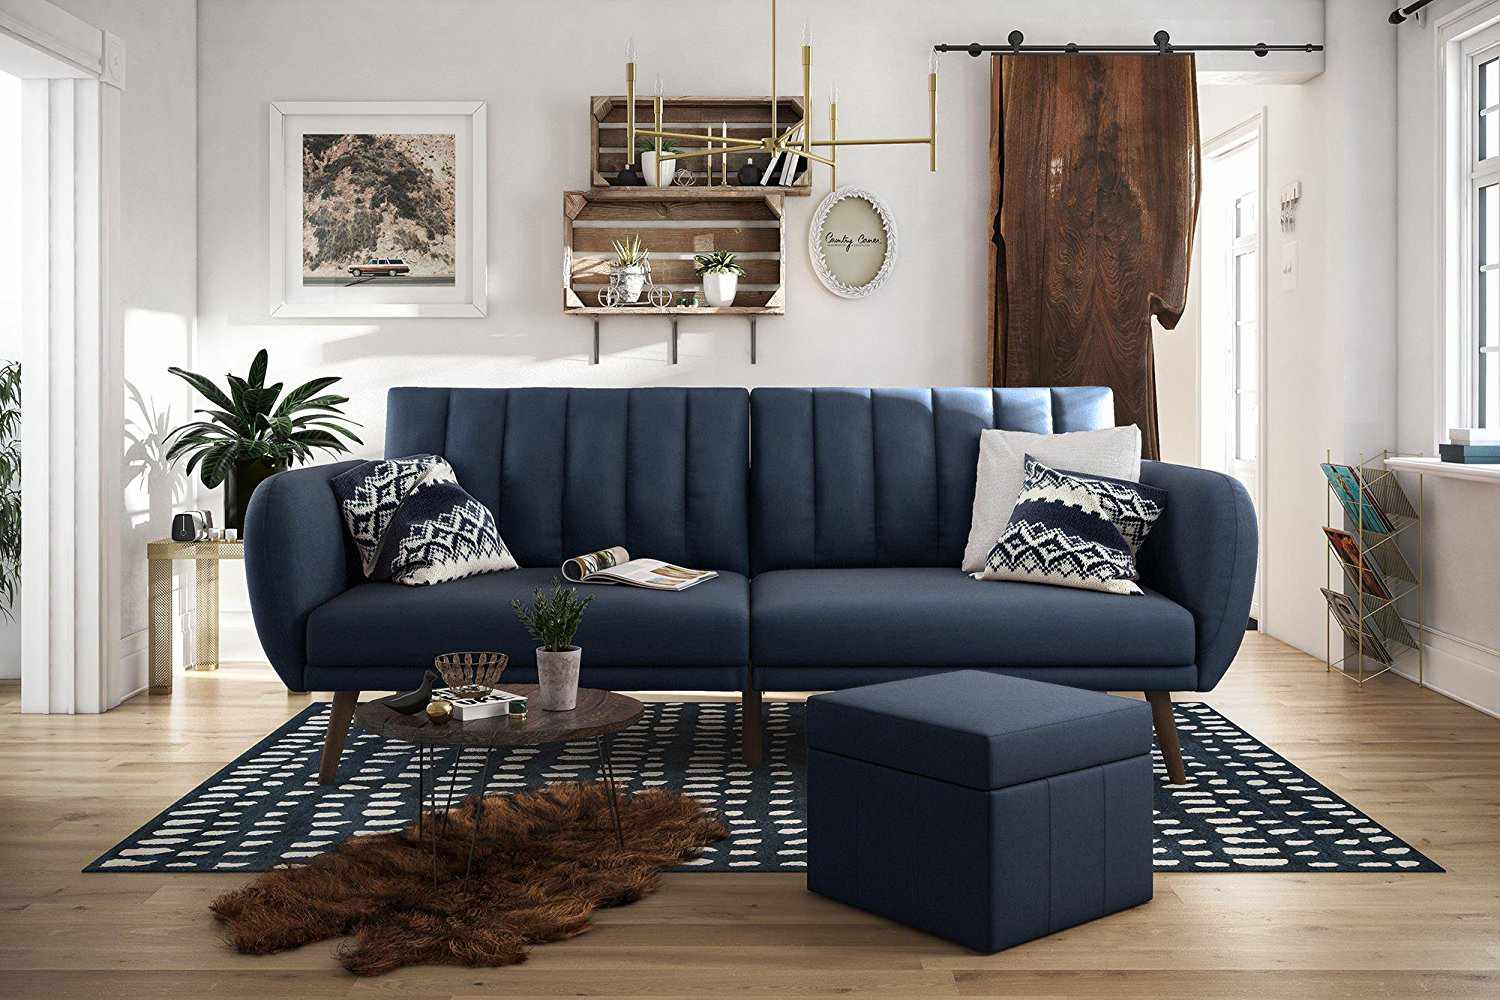 The Best Places to Buy Furniture in 2020